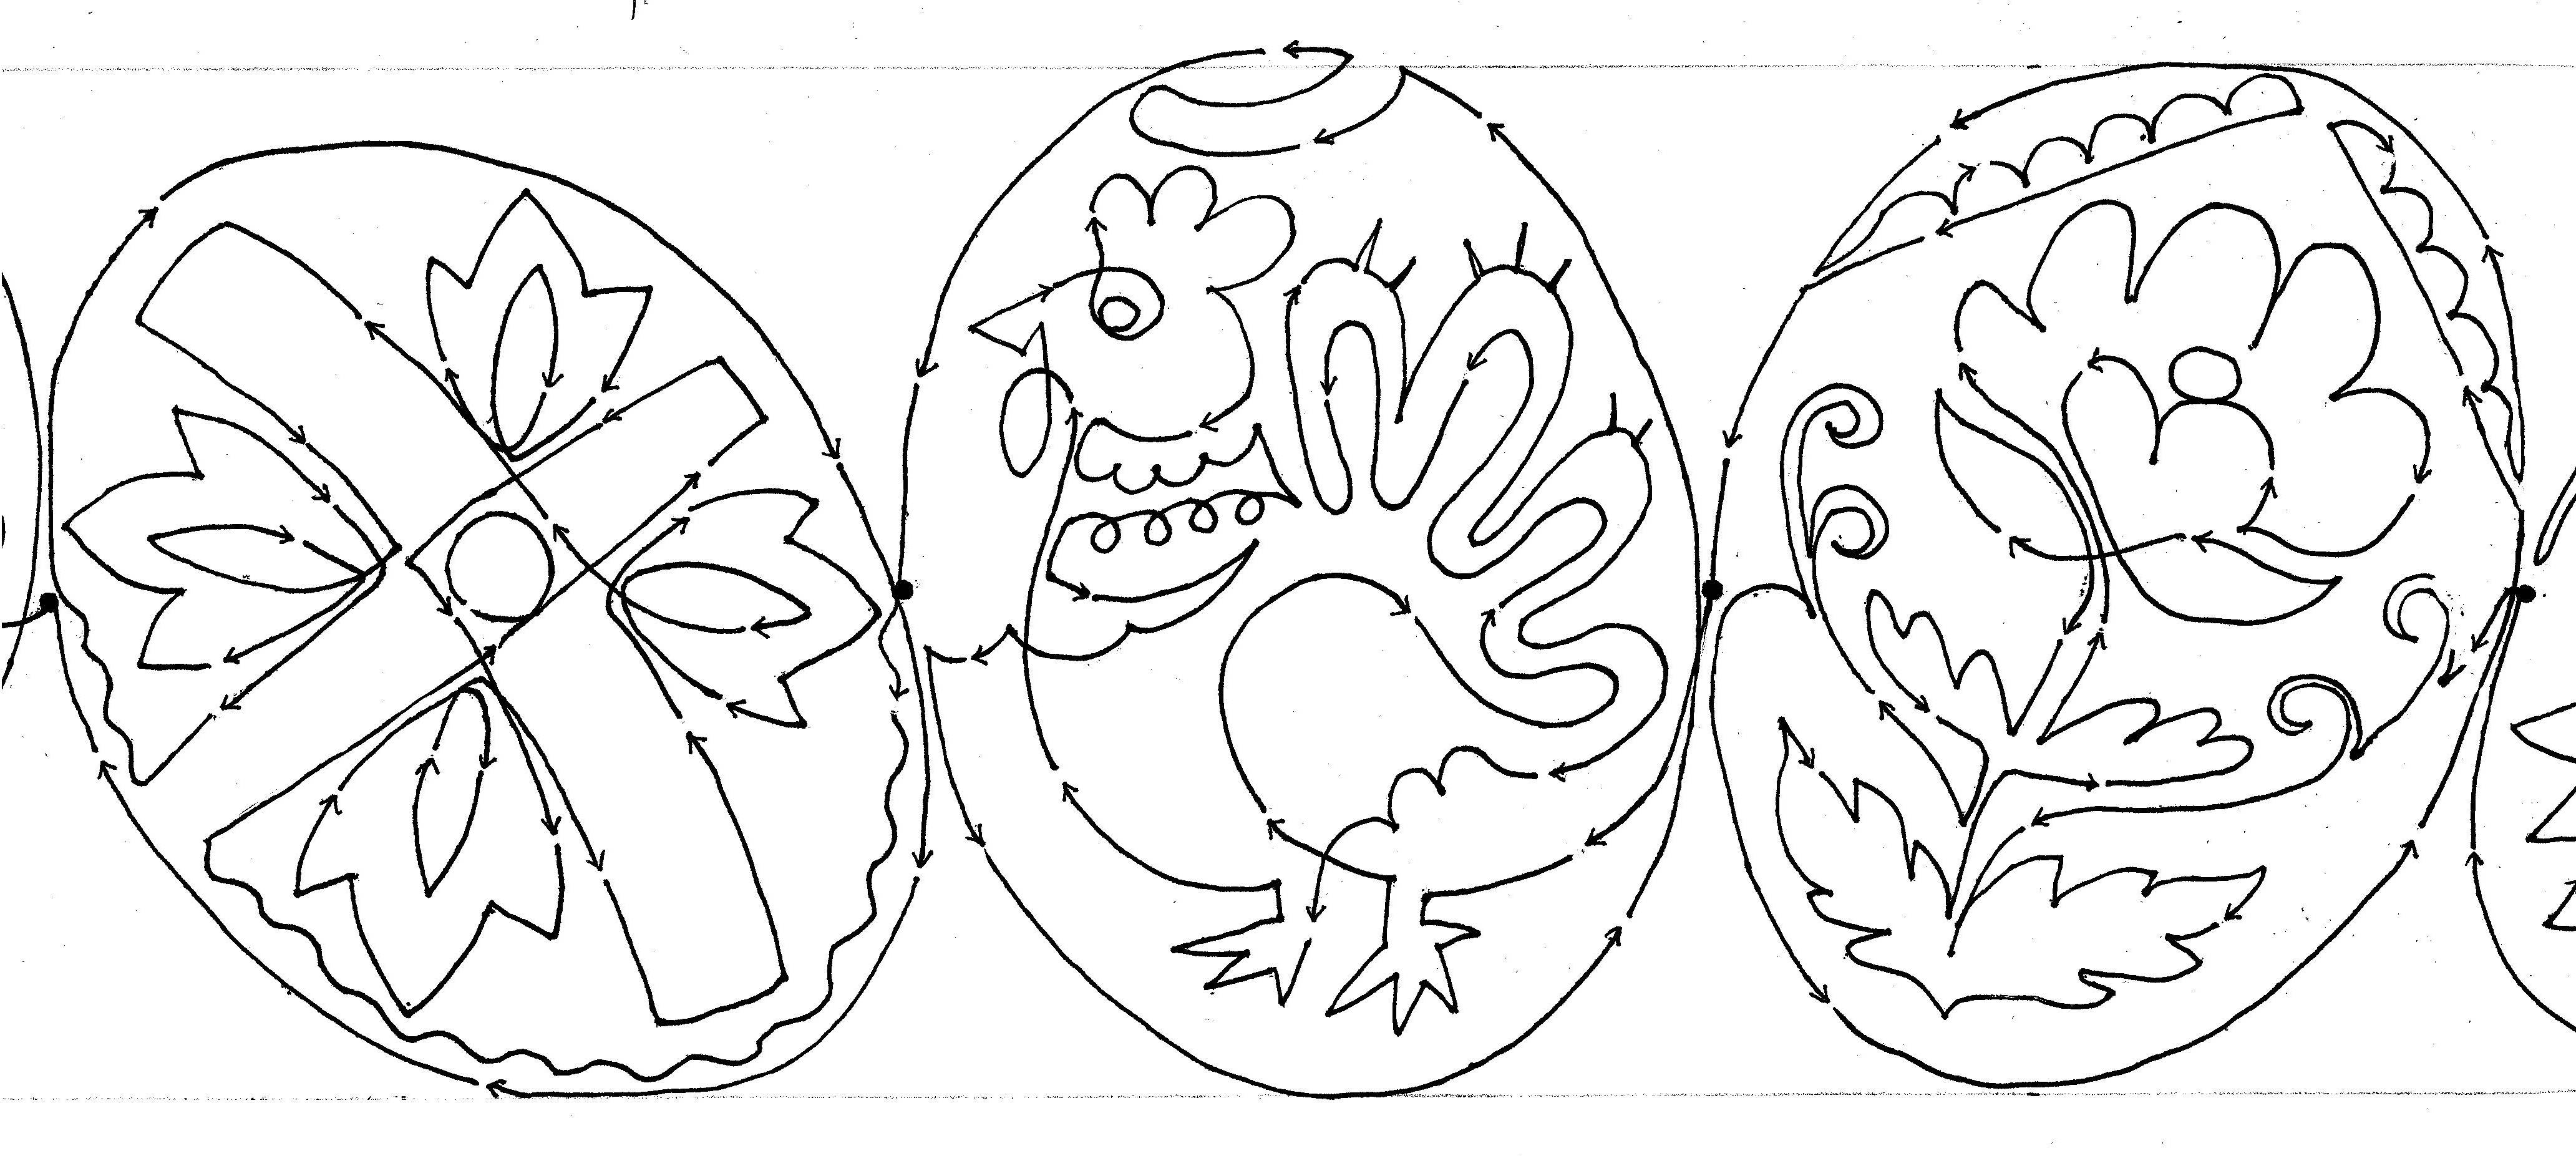 ukraine eggs coloring pages - photo#44